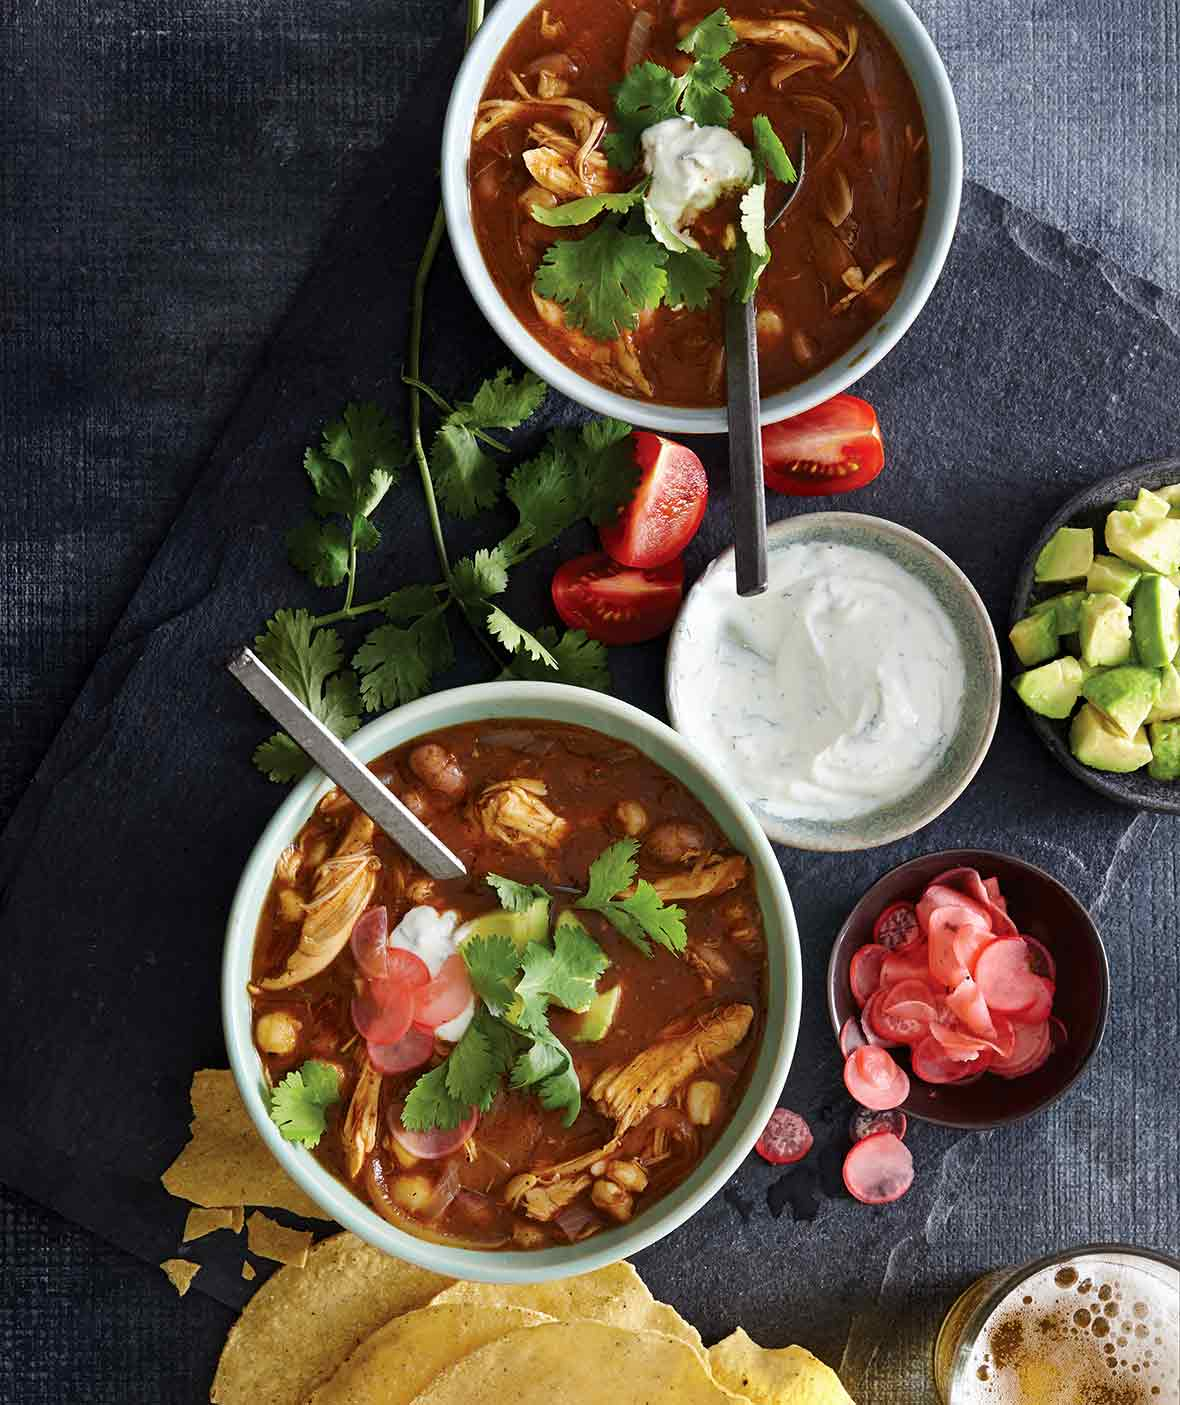 Two bowls of chicken posole, with a bowl of sour cream, some tomato wedges, cilantro, sliced radish, and tortilla shells scattered around them.